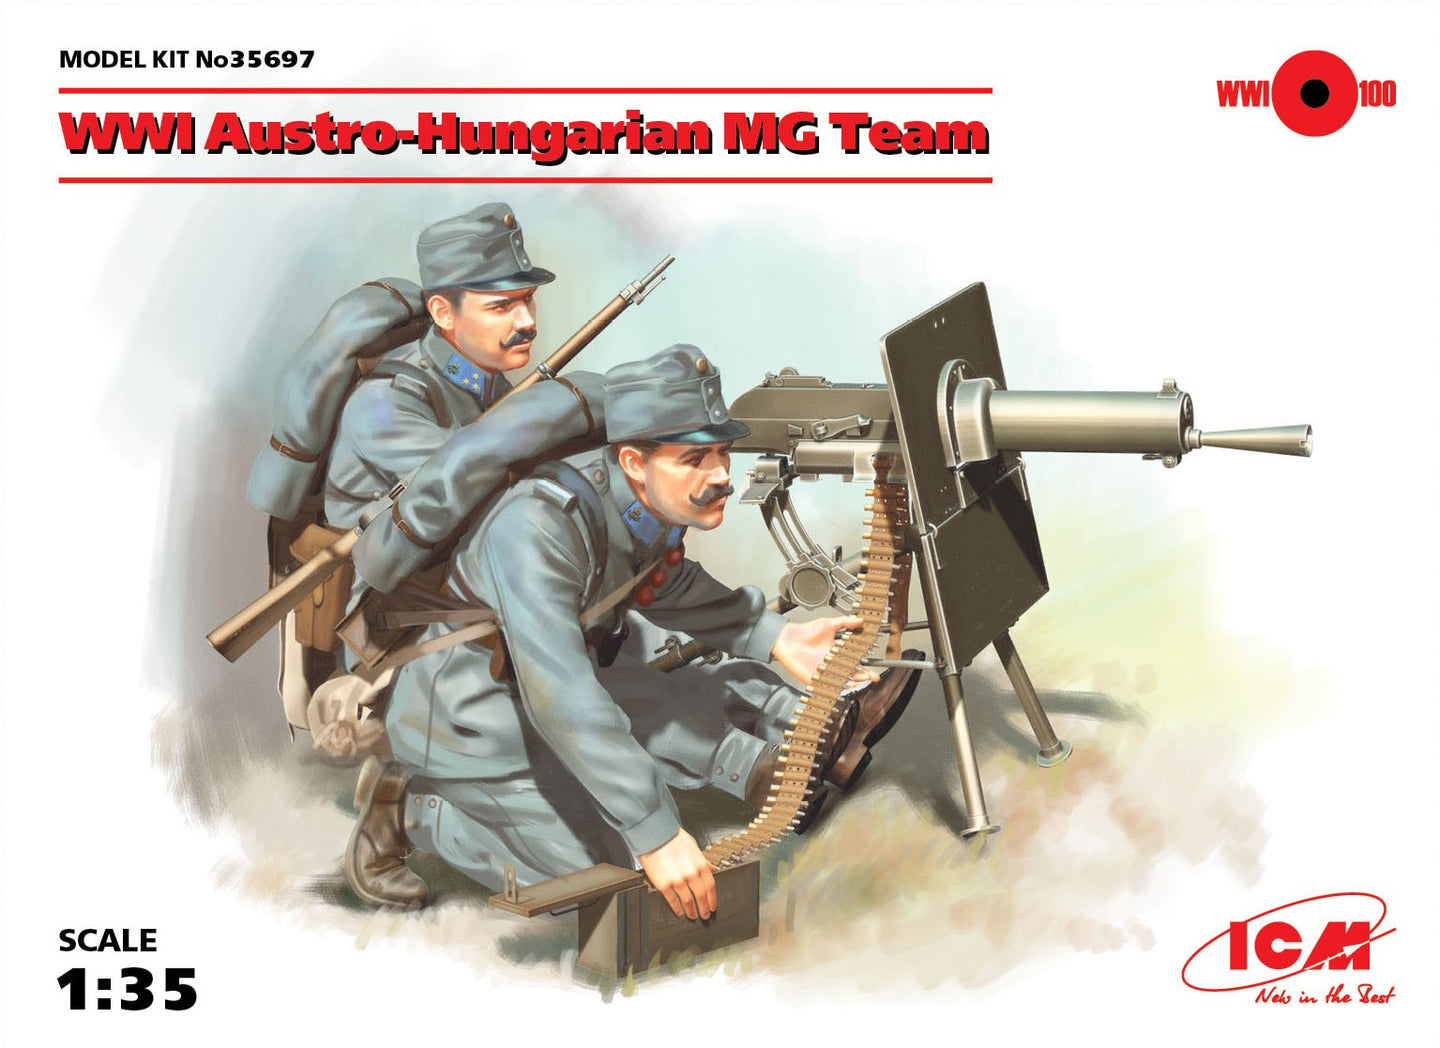 ICM 1/35 Austro-Hungarian WWI MG Team 35697